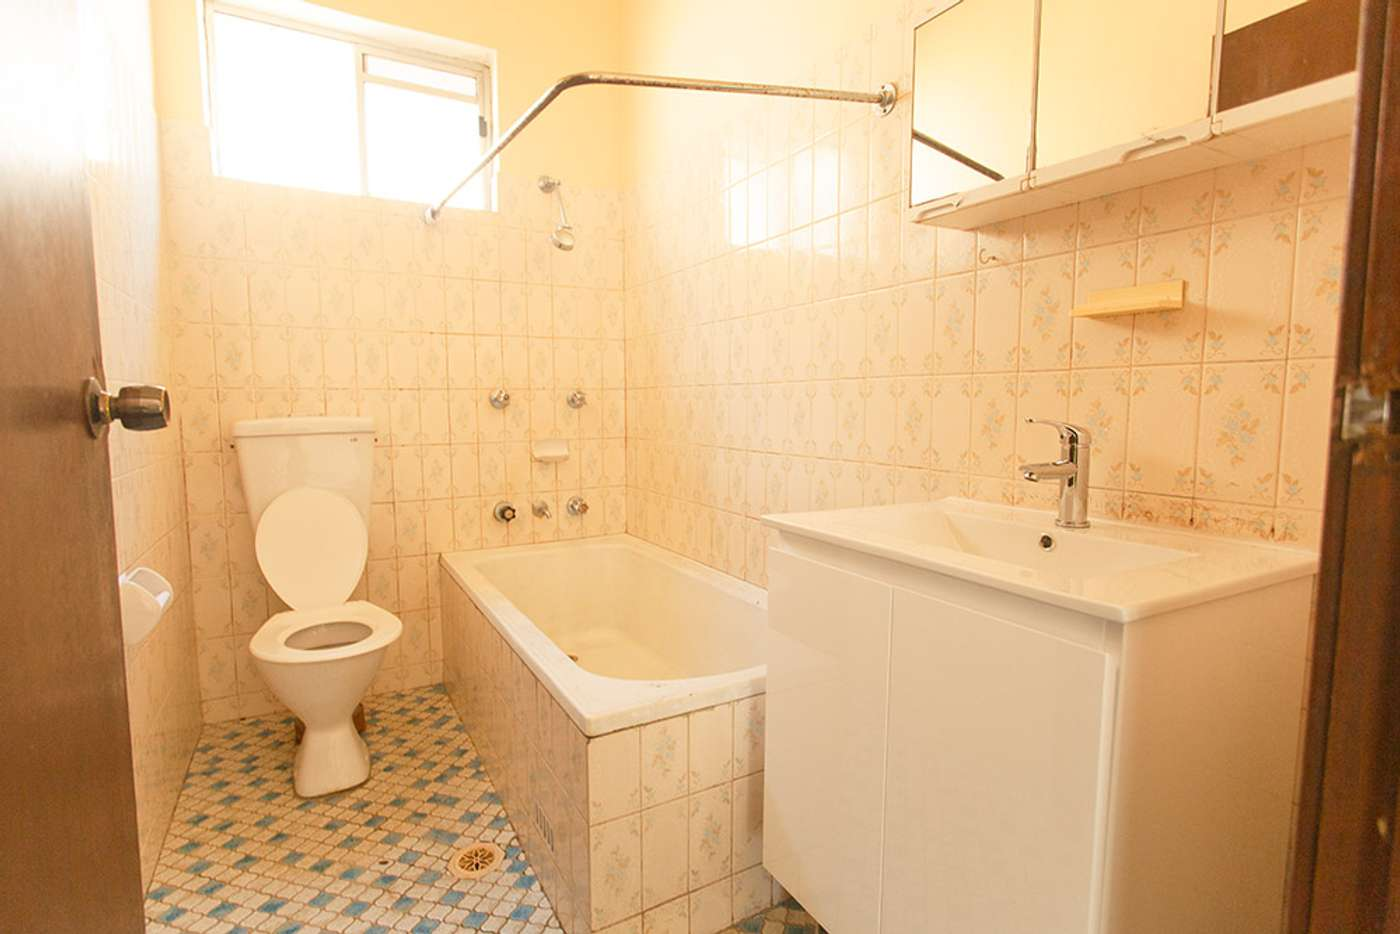 Sixth view of Homely house listing, 8 Fifth Street, Granville NSW 2142